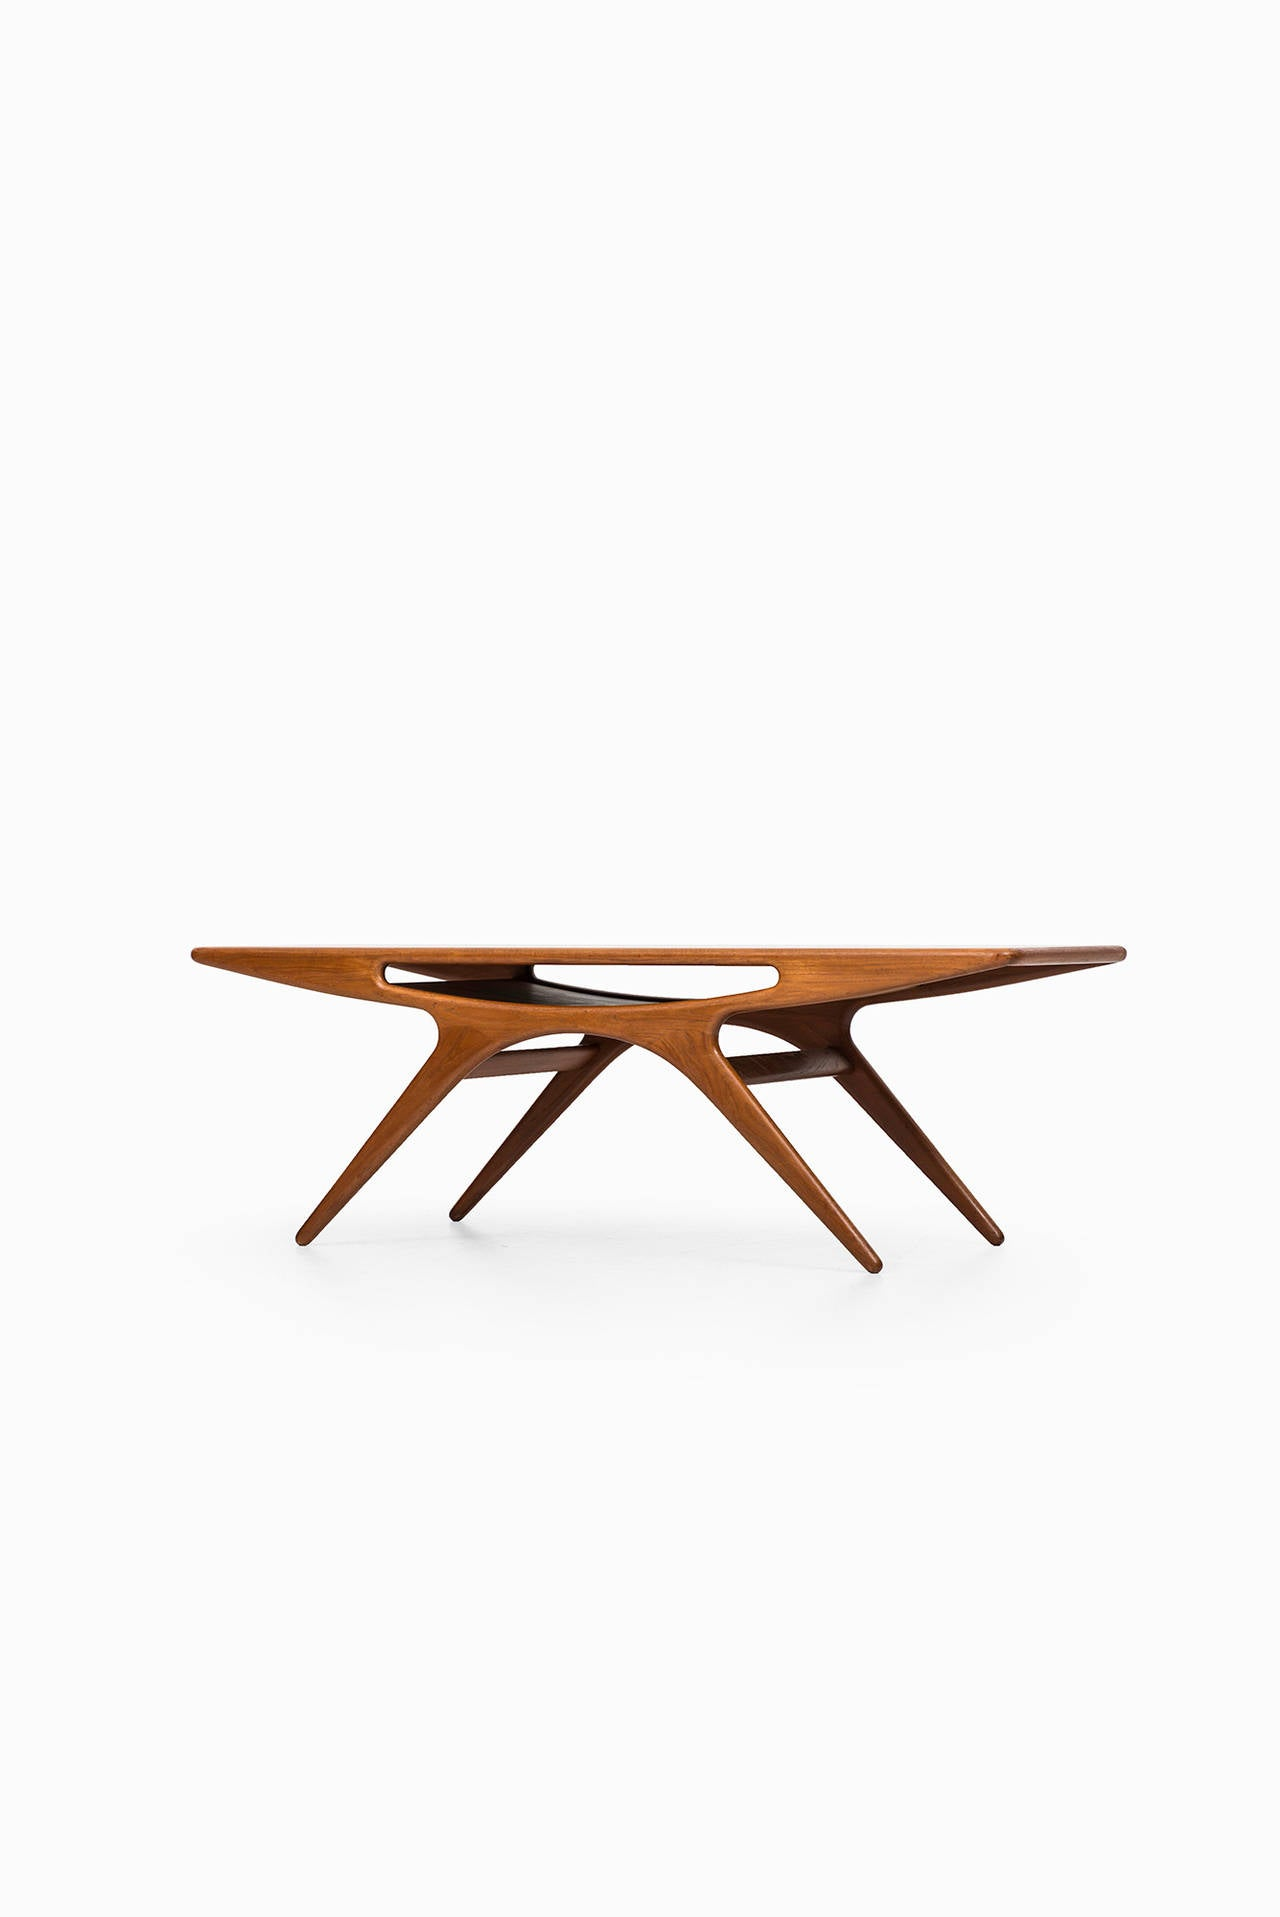 Johannes Andersen Smiling Coffee Table In Teak By CFC Silkeborg In Denmark 2